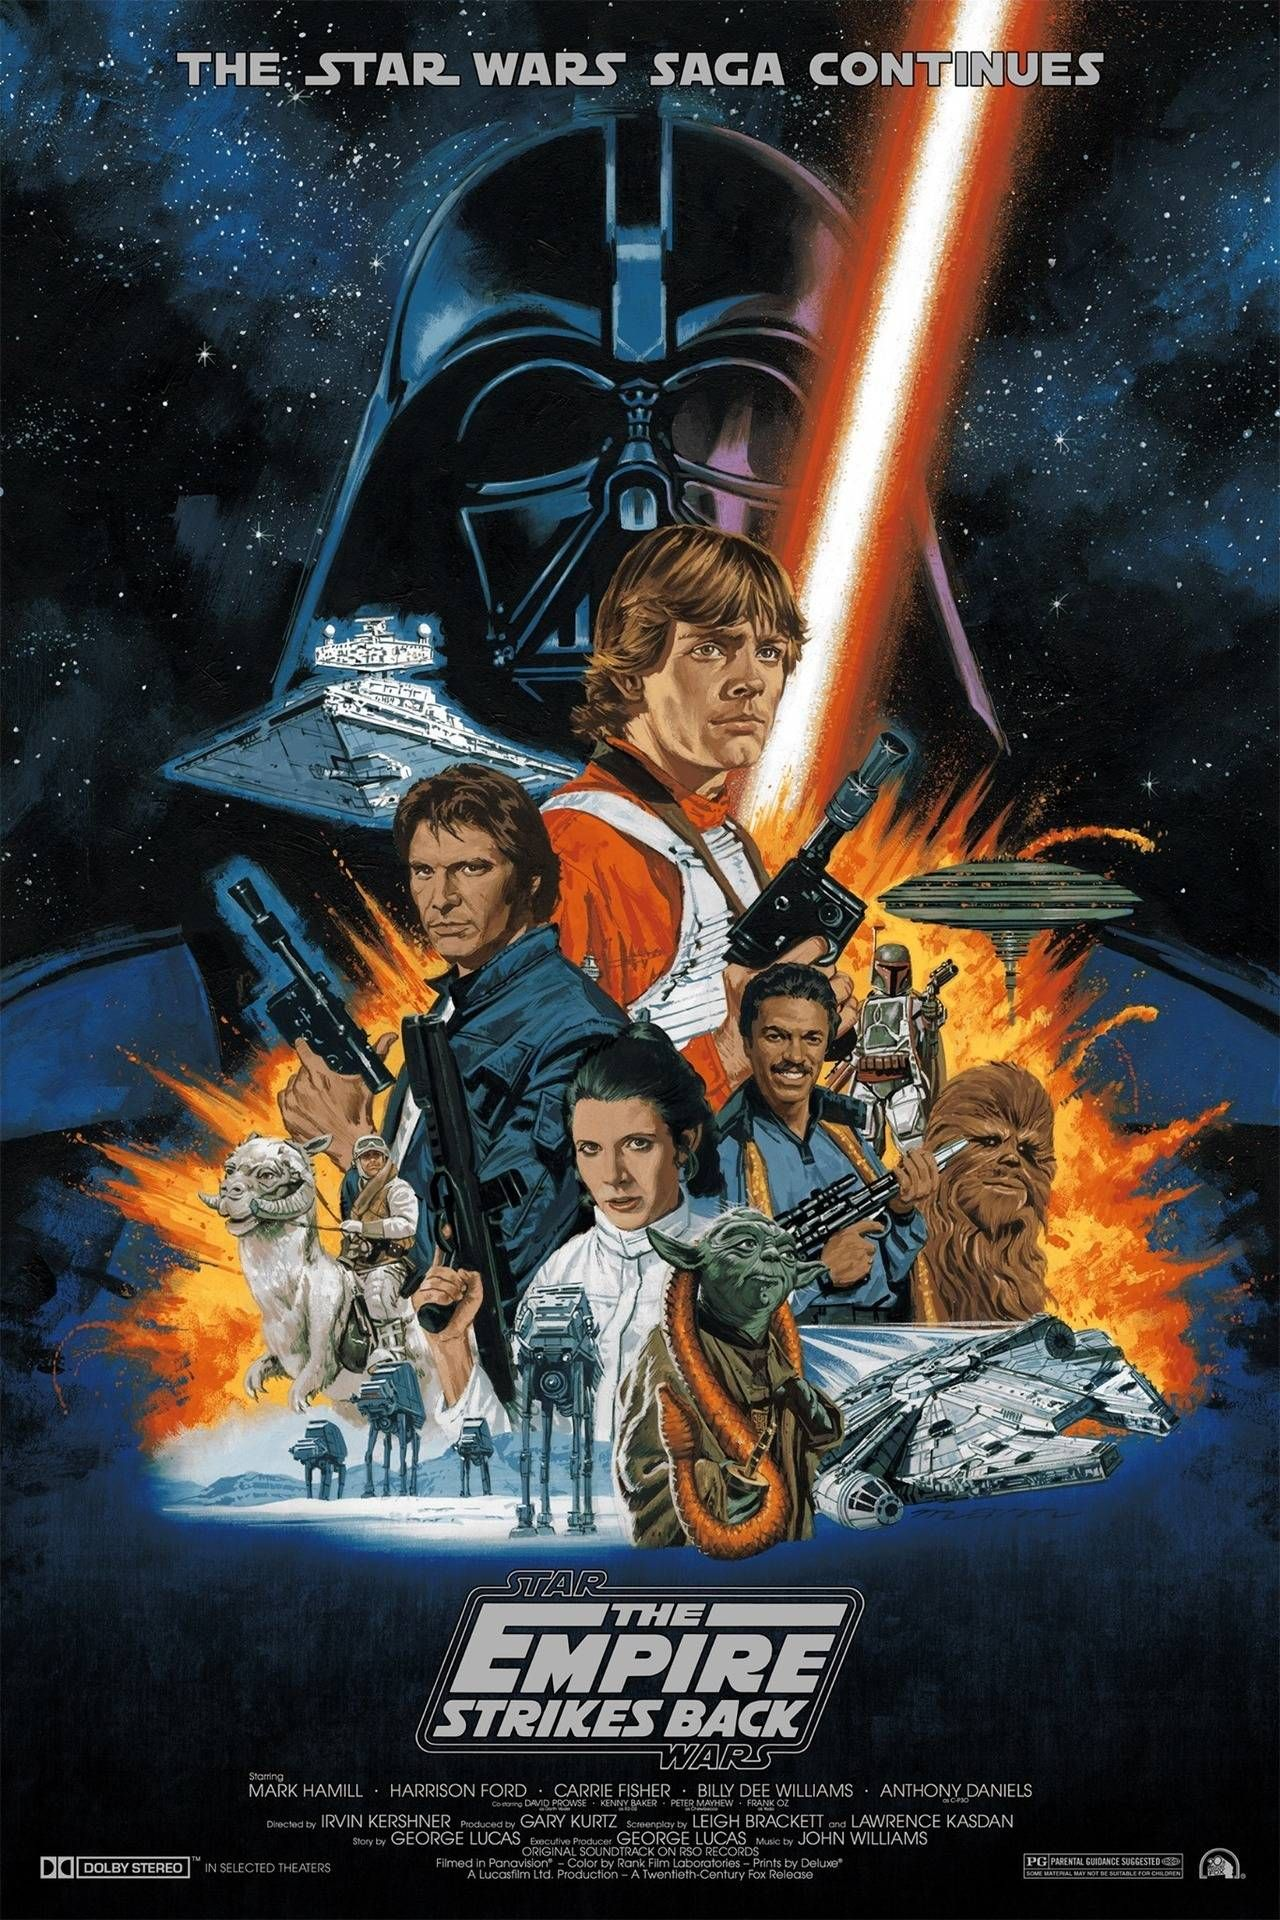 The Empire Strikes Back Episode 5 The Art of Star Wars